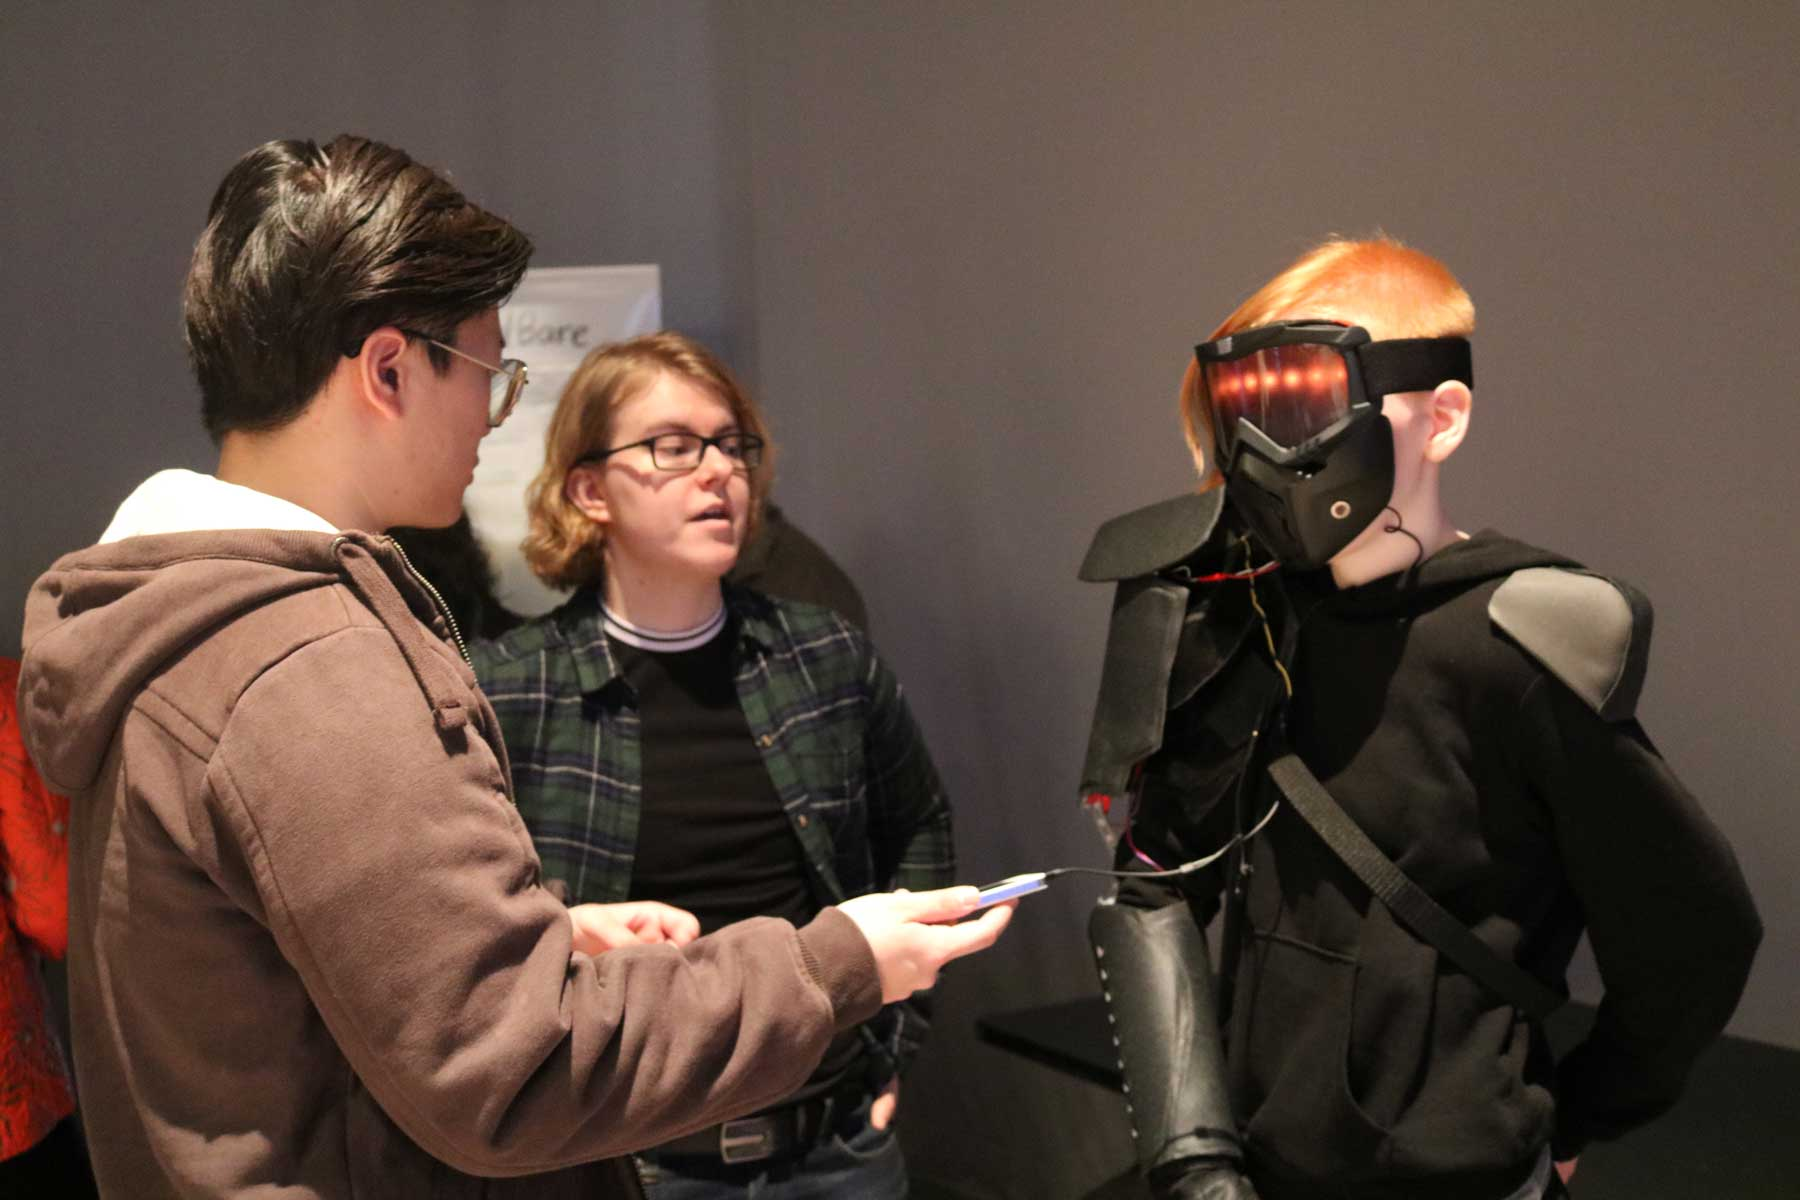 Students interacting with VR